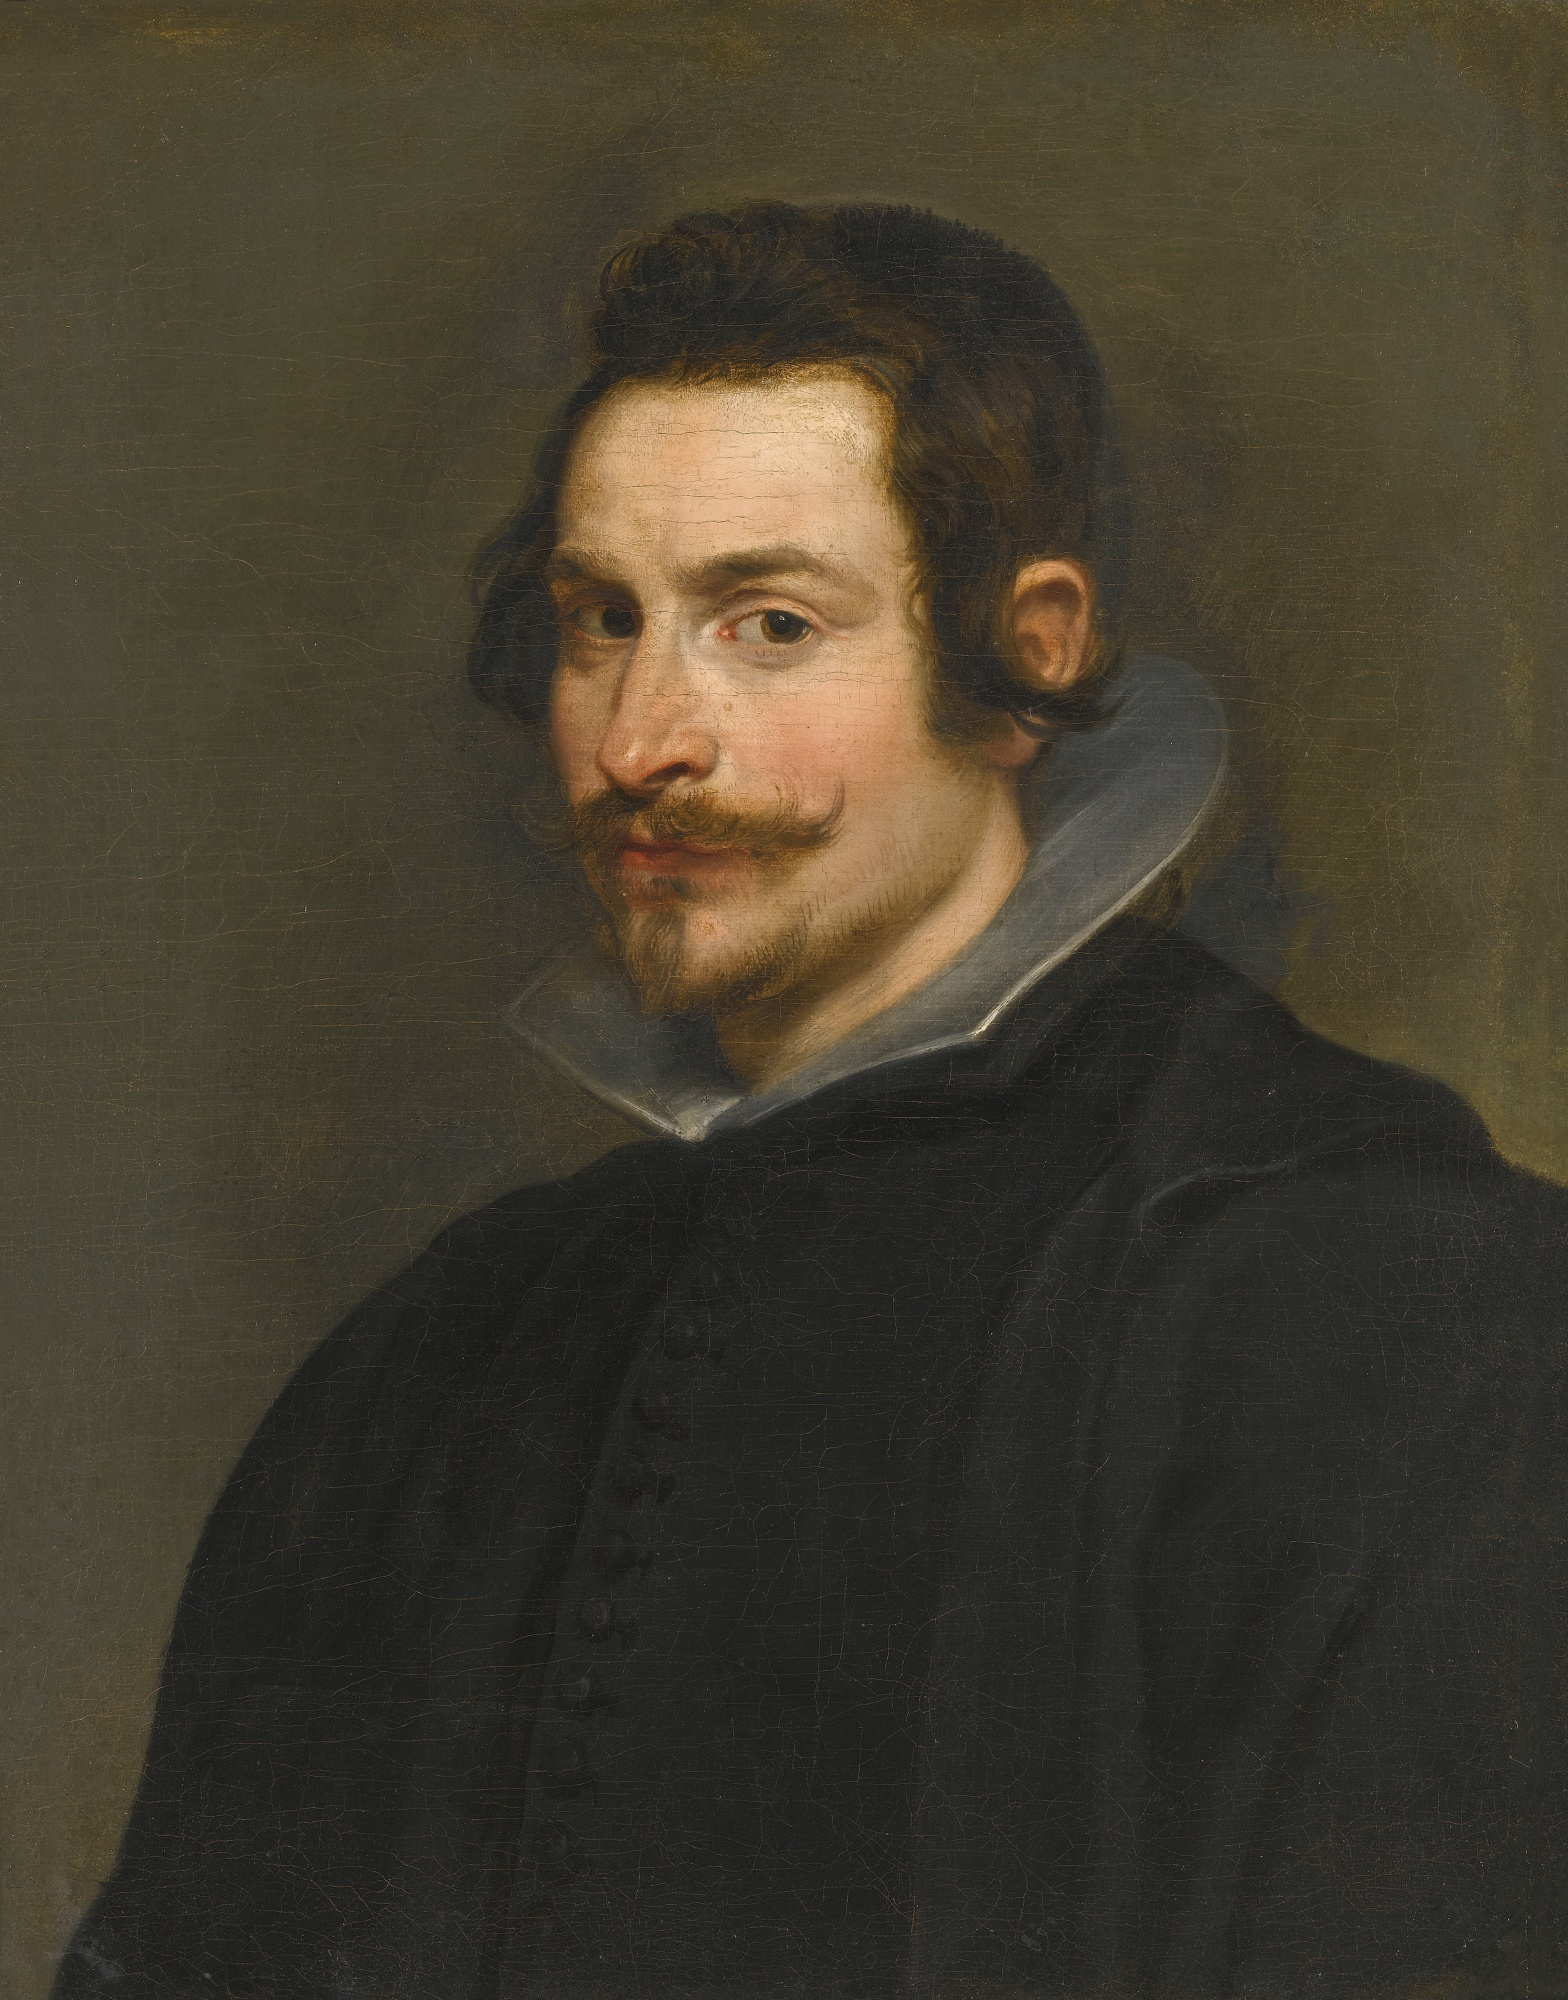 rubens-portrait-of-a-gentleman.jpg